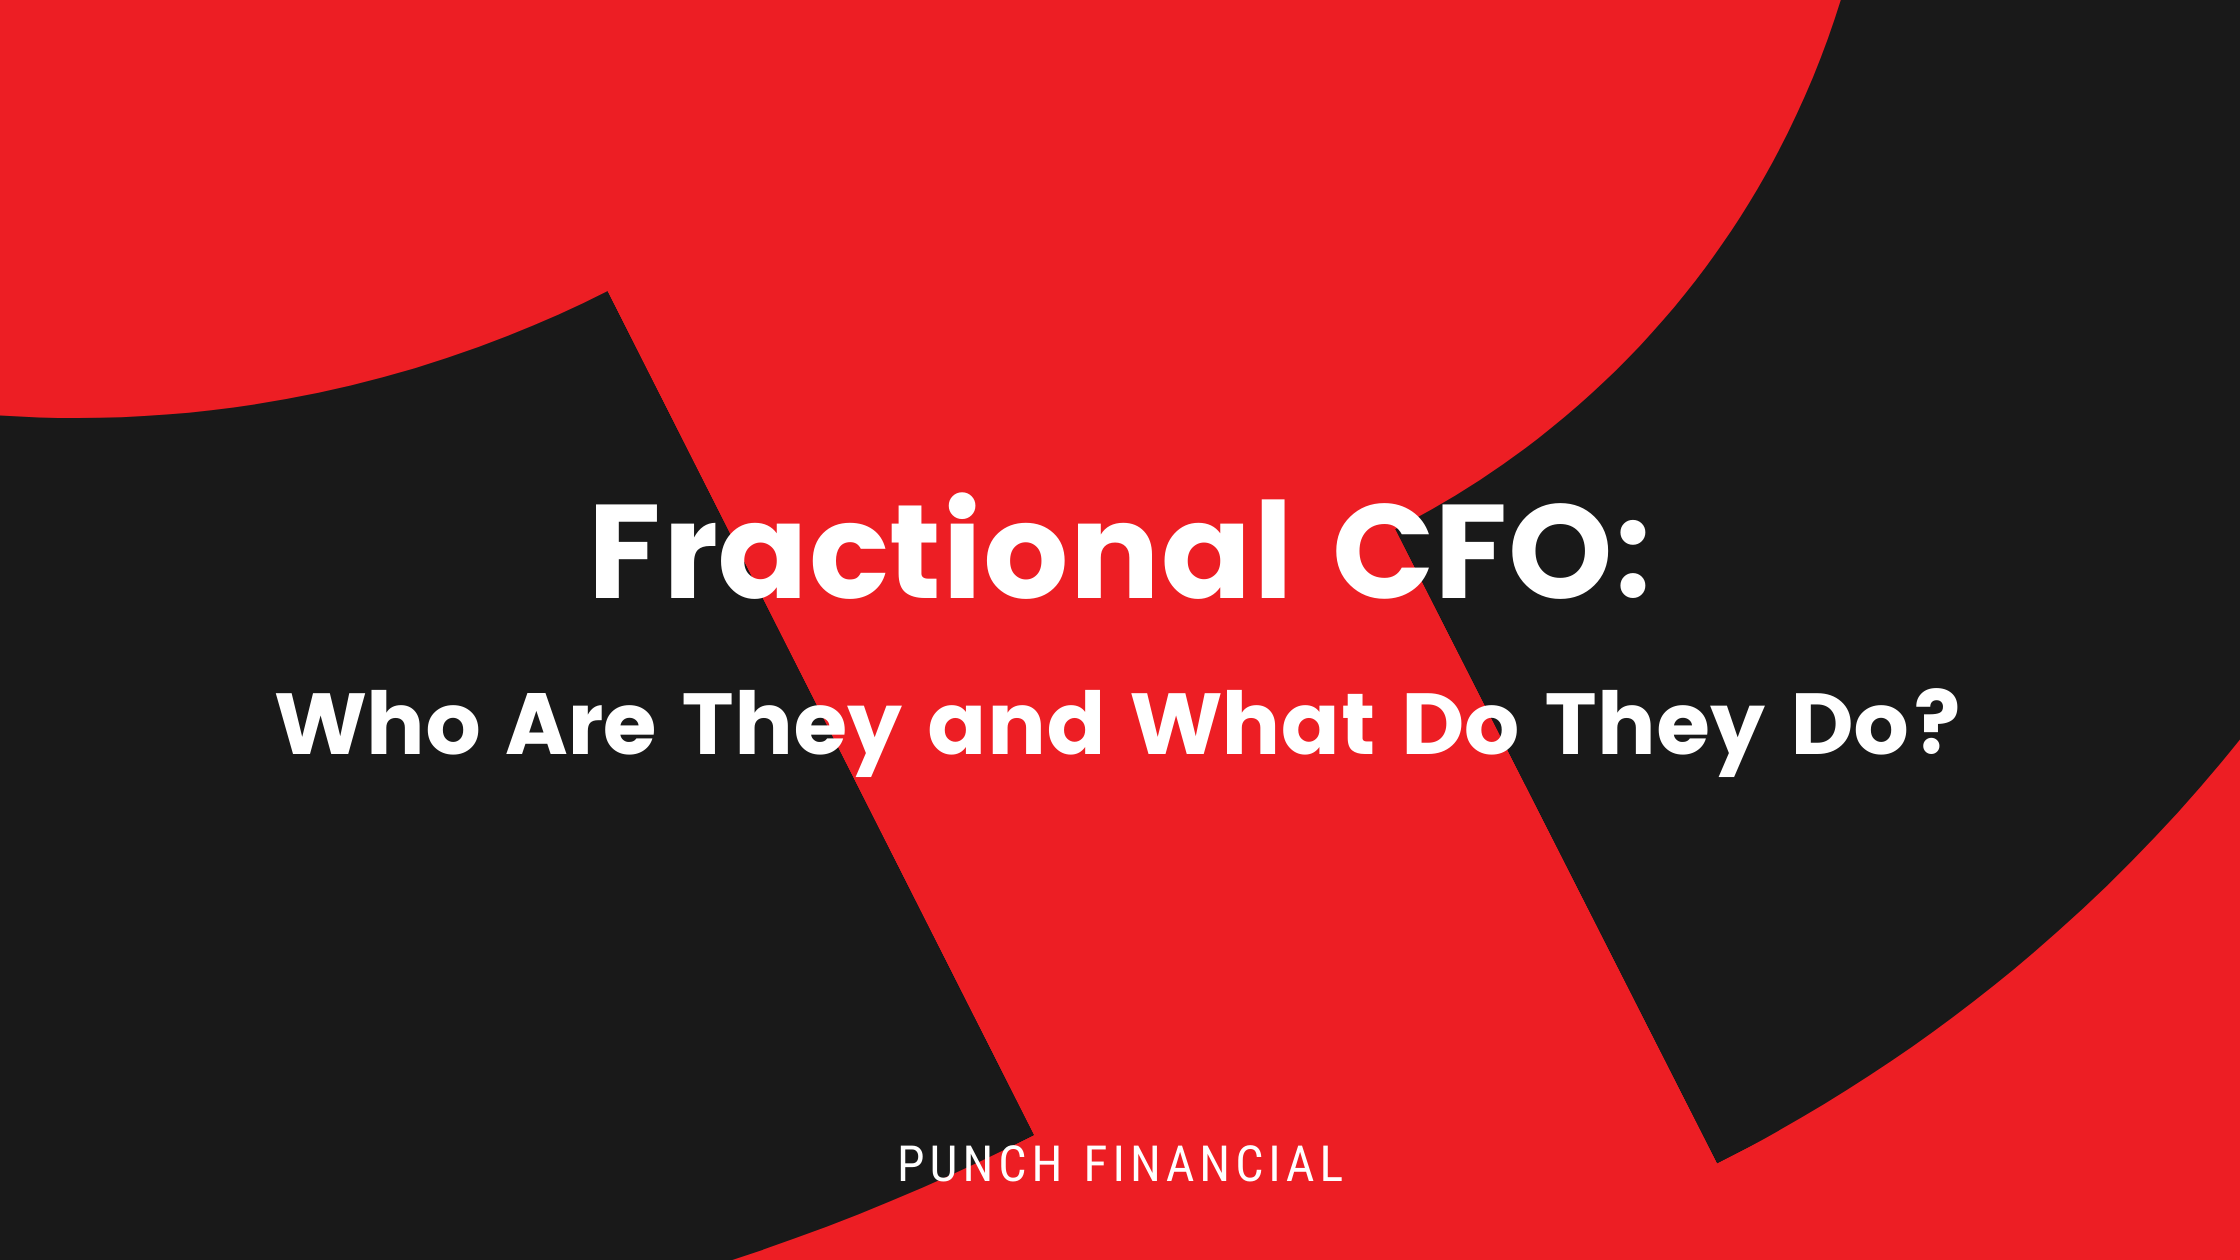 Fractional CFO: Who Are They and What Do They Do?